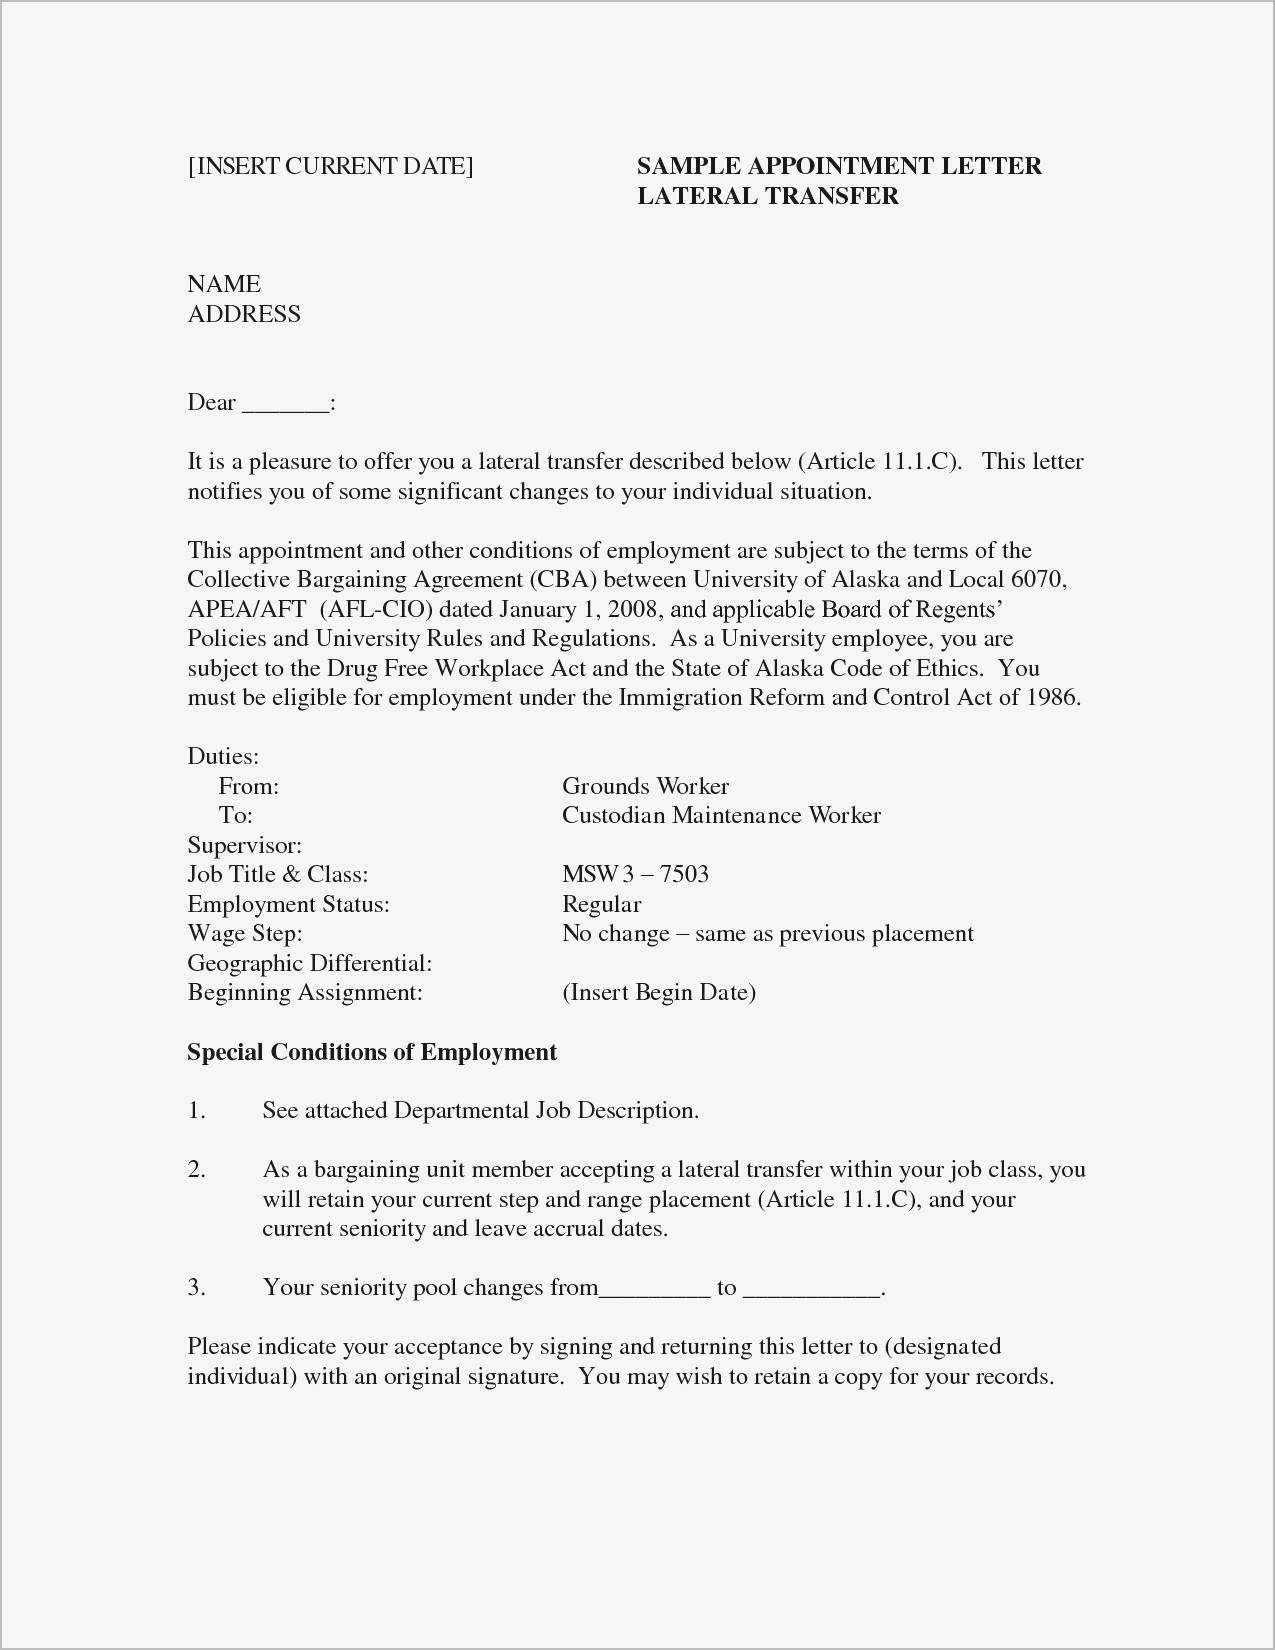 Free Printable Business Letter Template - Free Printable Resume Templates Pdf format